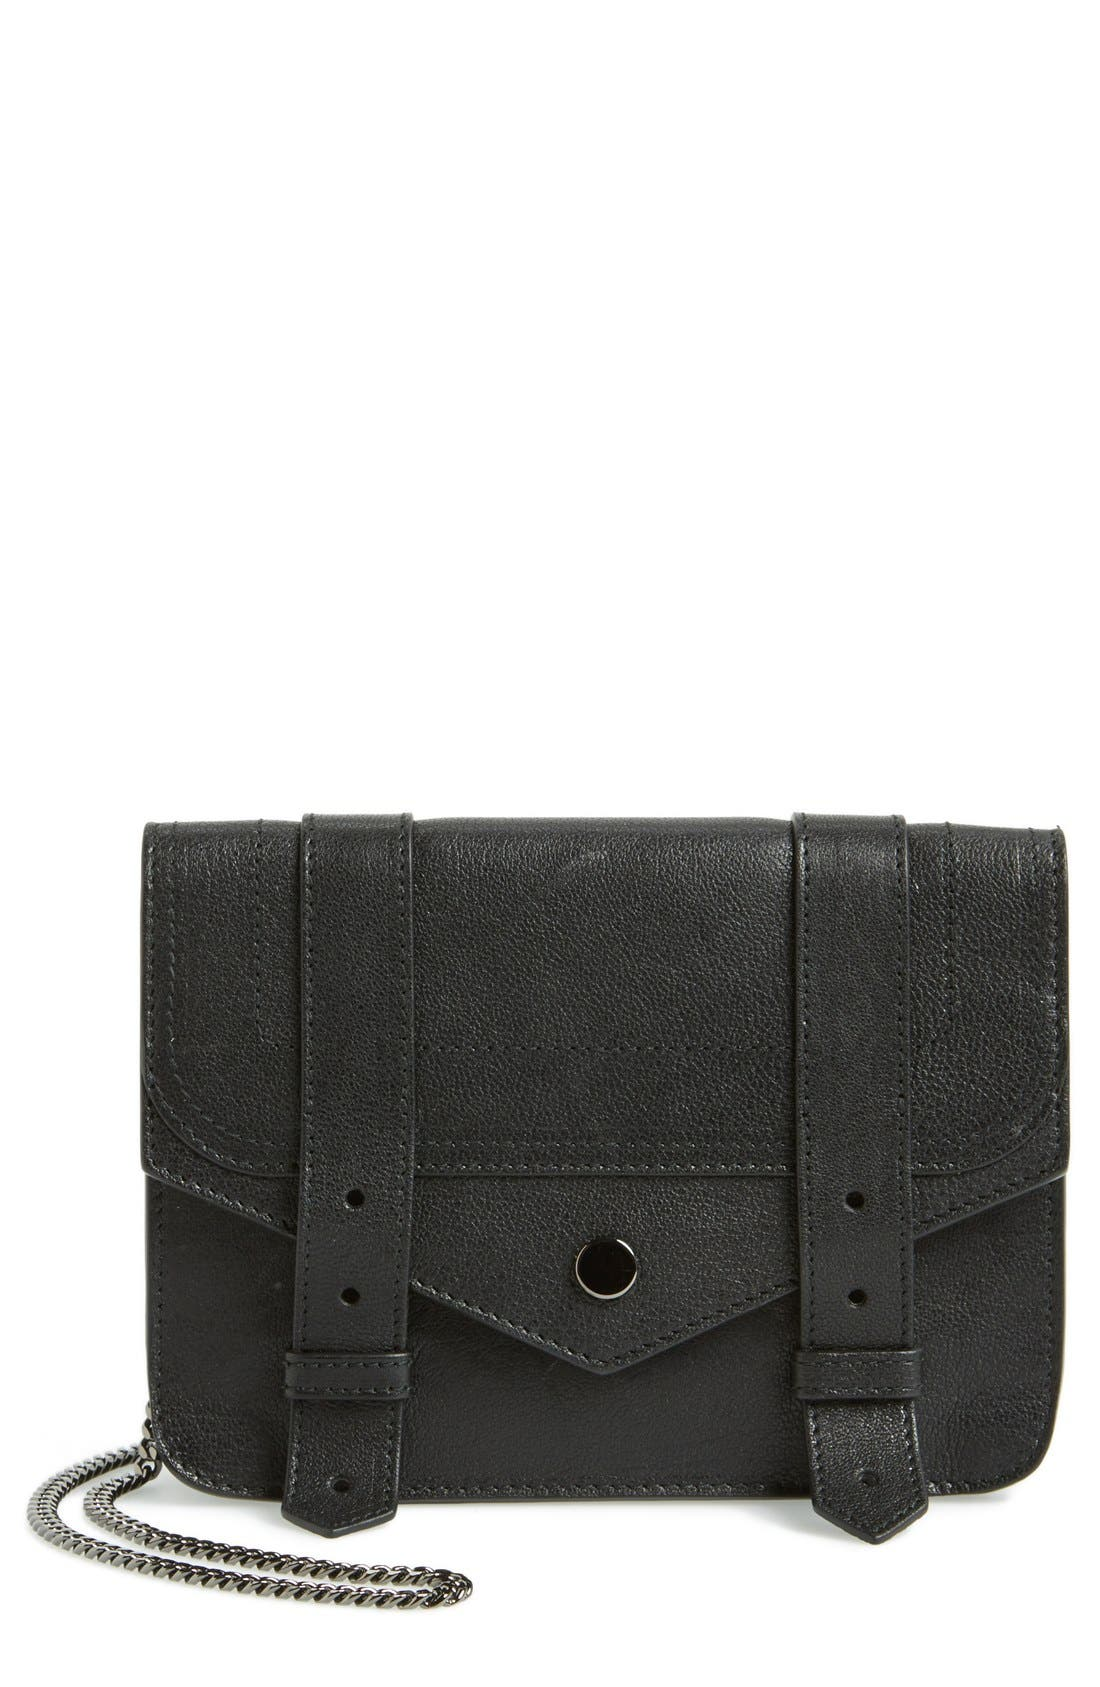 Main Image - Proenza Schouler 'Large PS1' Leather Crossbody Wallet